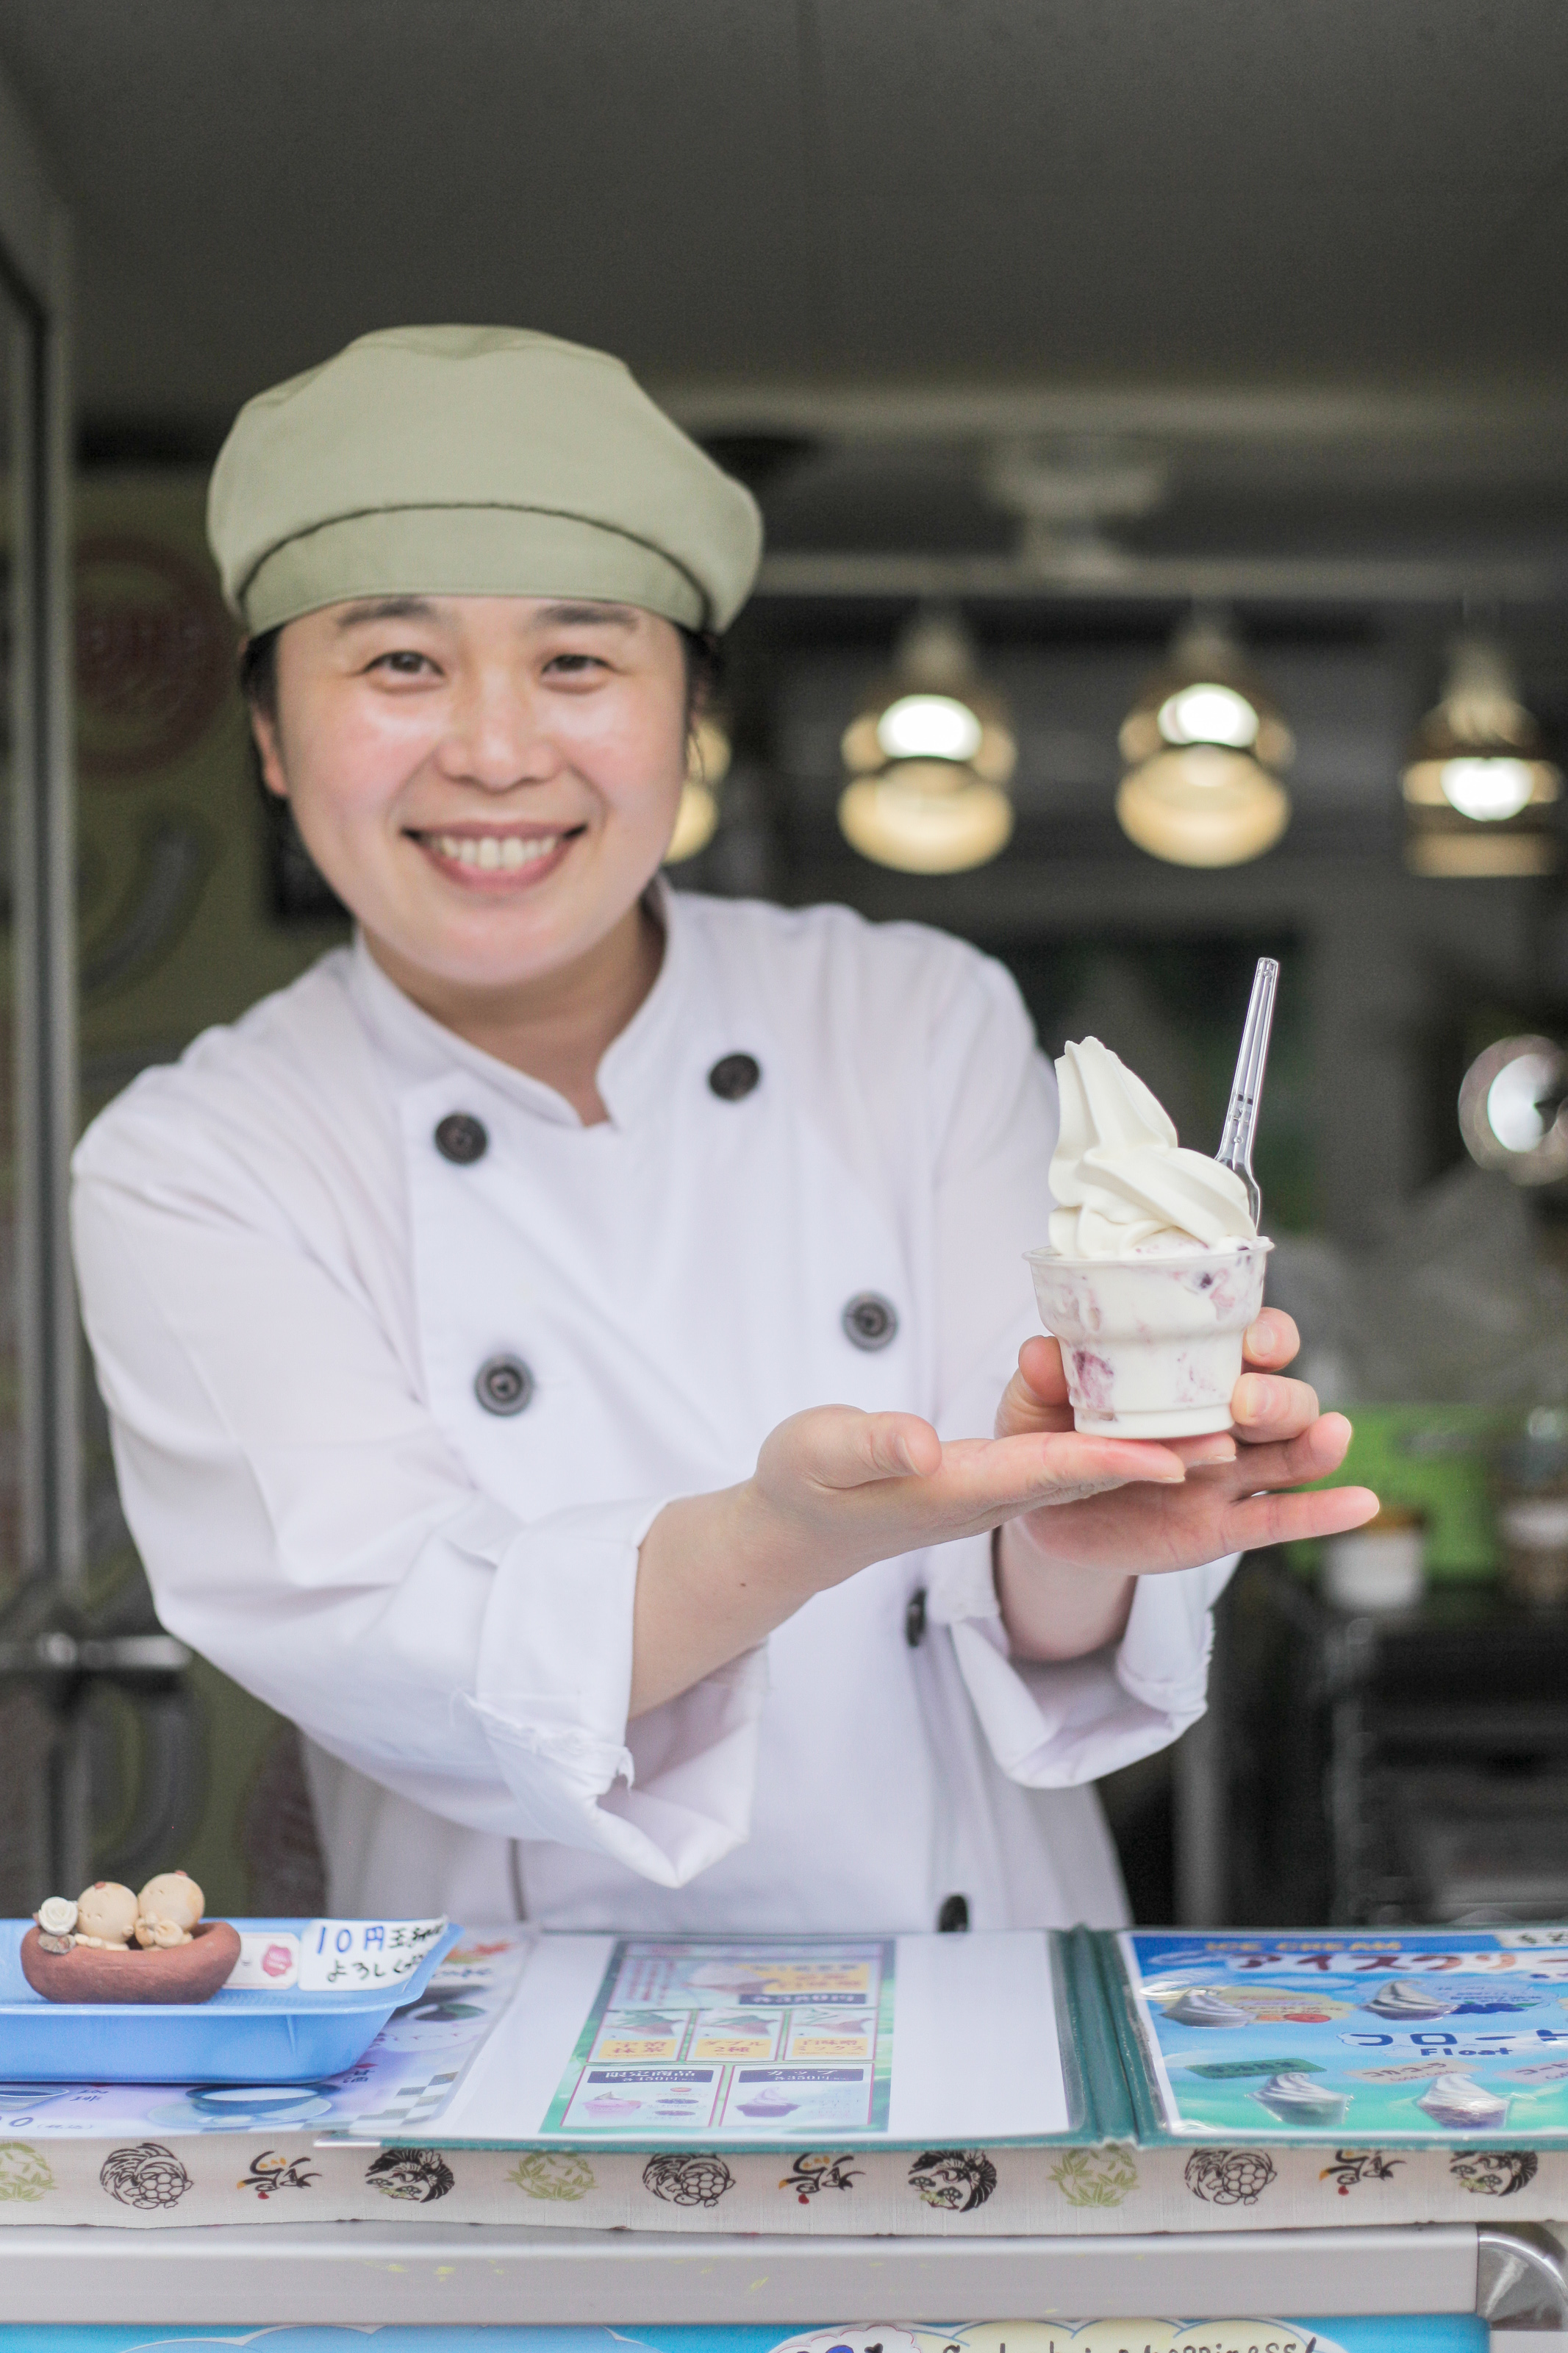 Hana-san of Hana Ice showing off her blueberry ice cream topped with white miso soft serve (¥380).